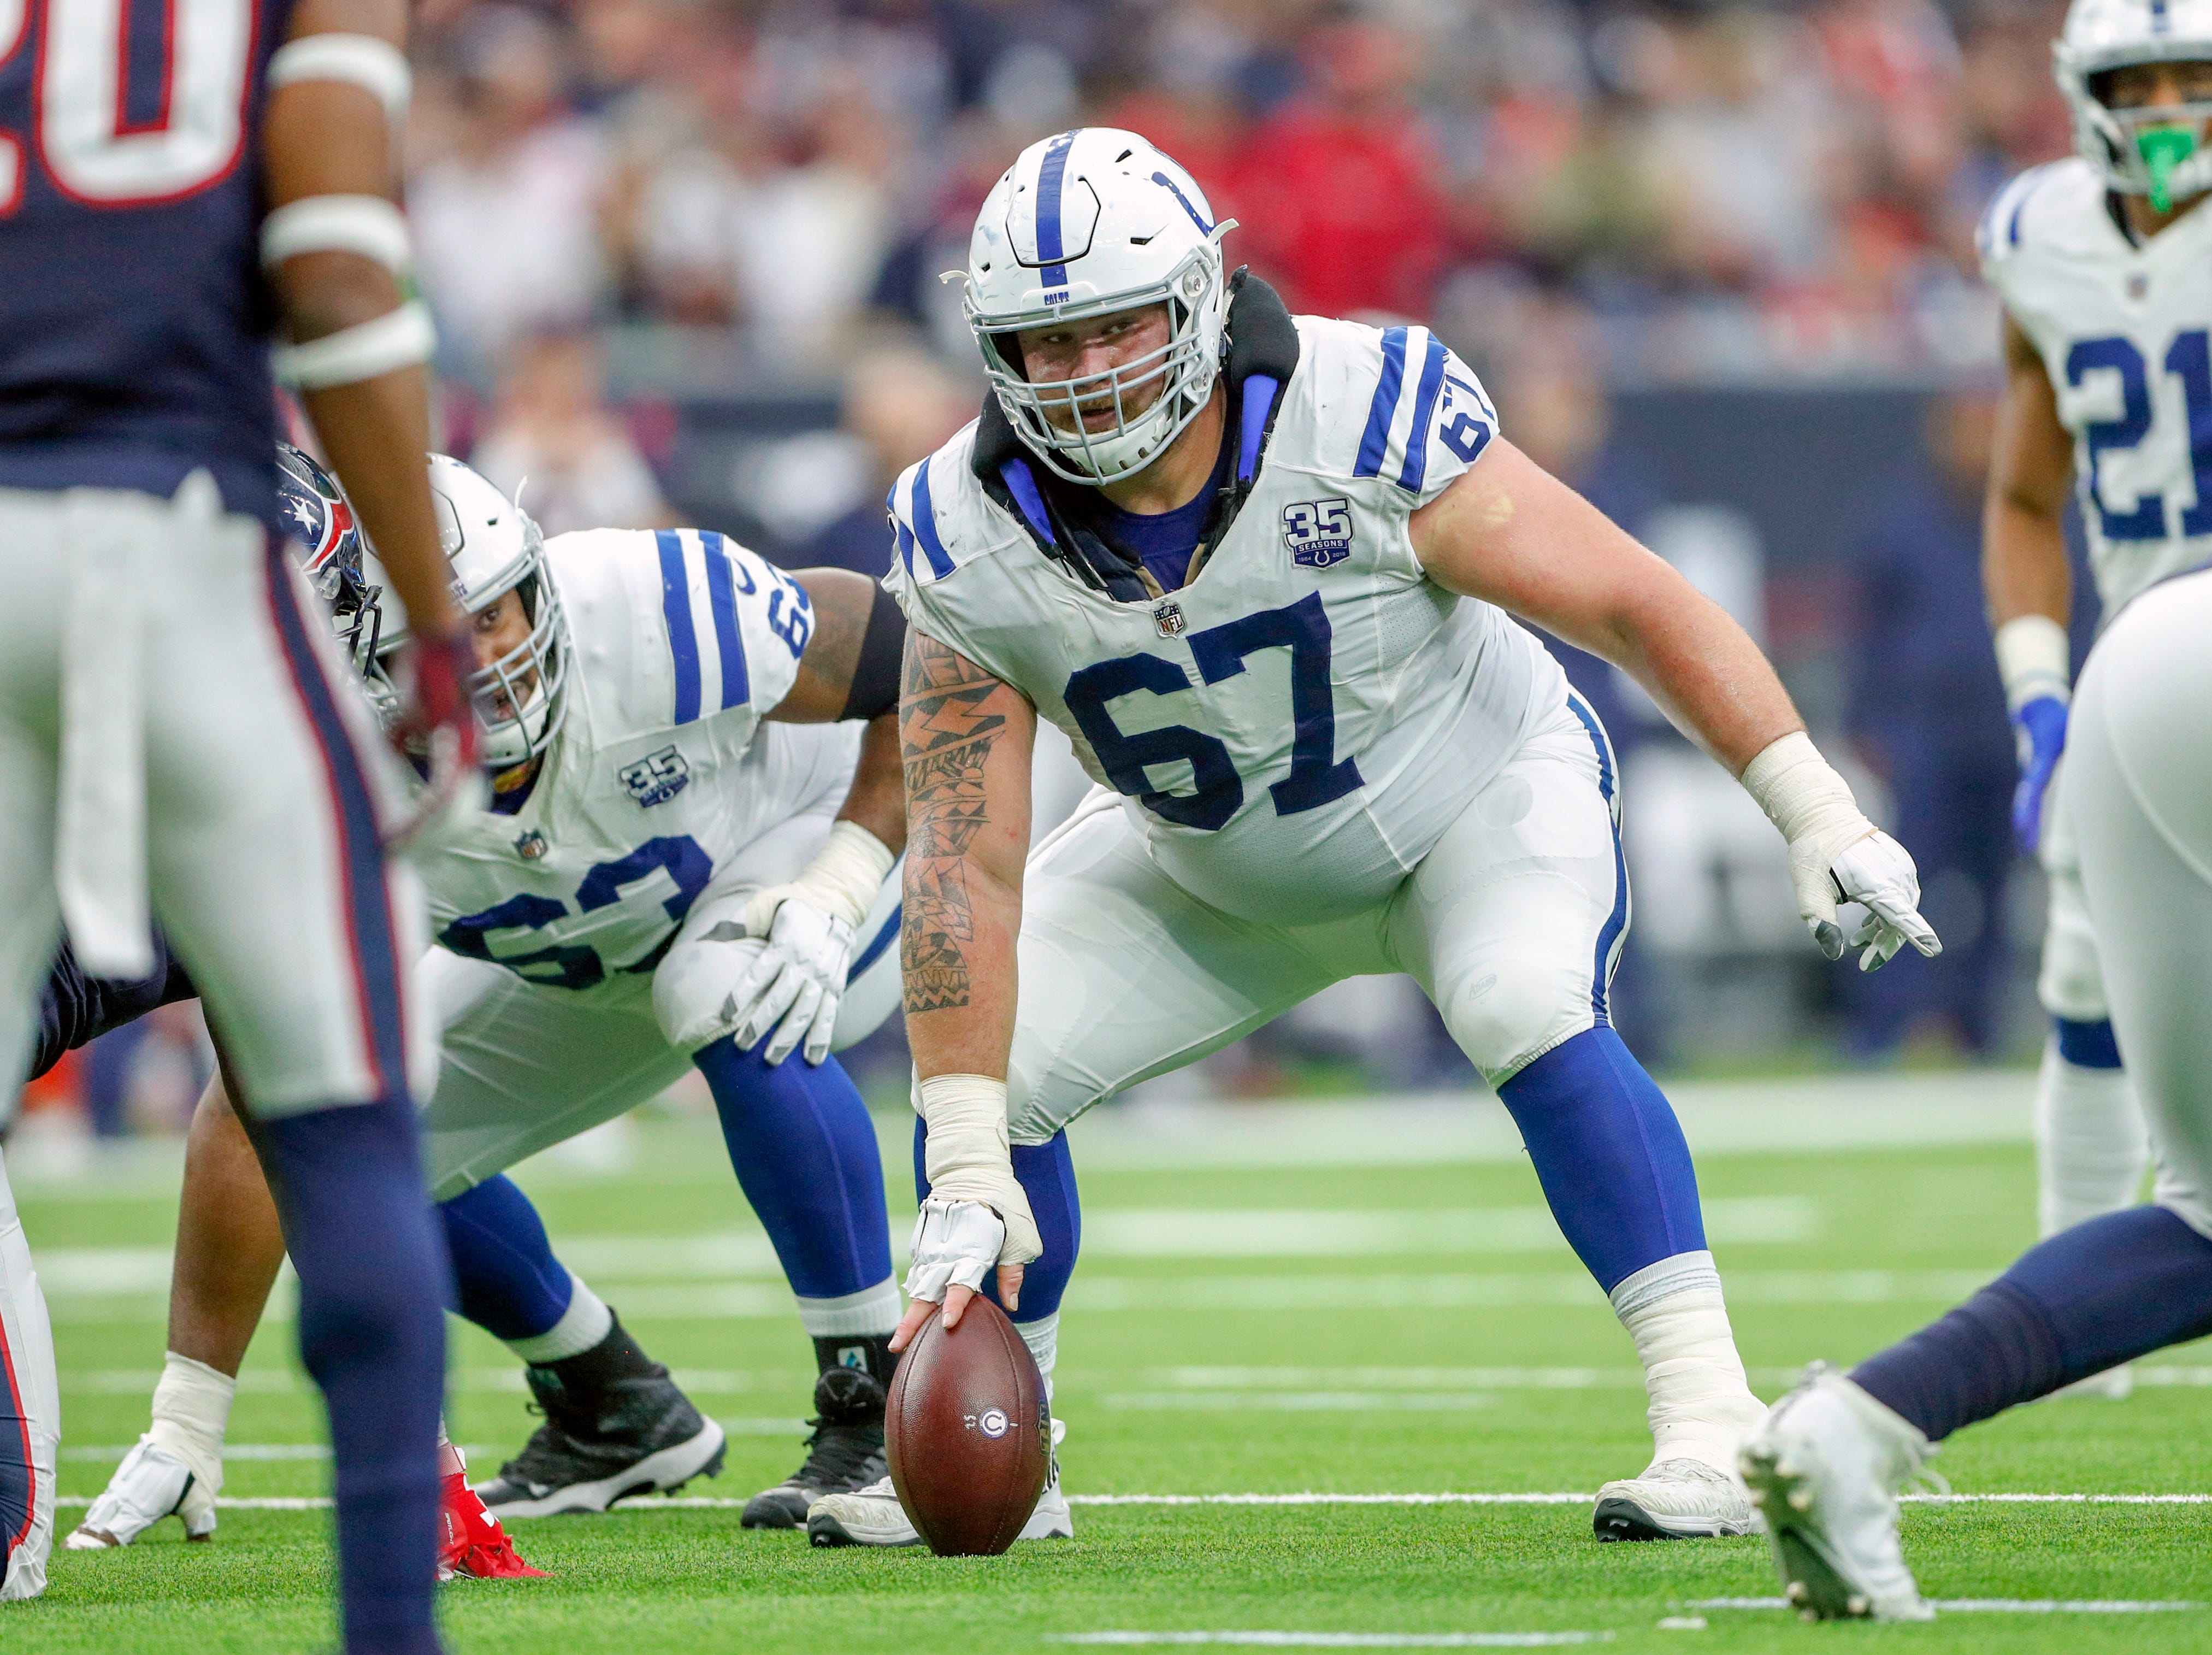 Indianapolis Colts offensive guard Evan Boehm (67) checks  out the defense before the snap against the Houston Texans at NRG Stadium in Houston on Sunday, Dec. 9, 2018.